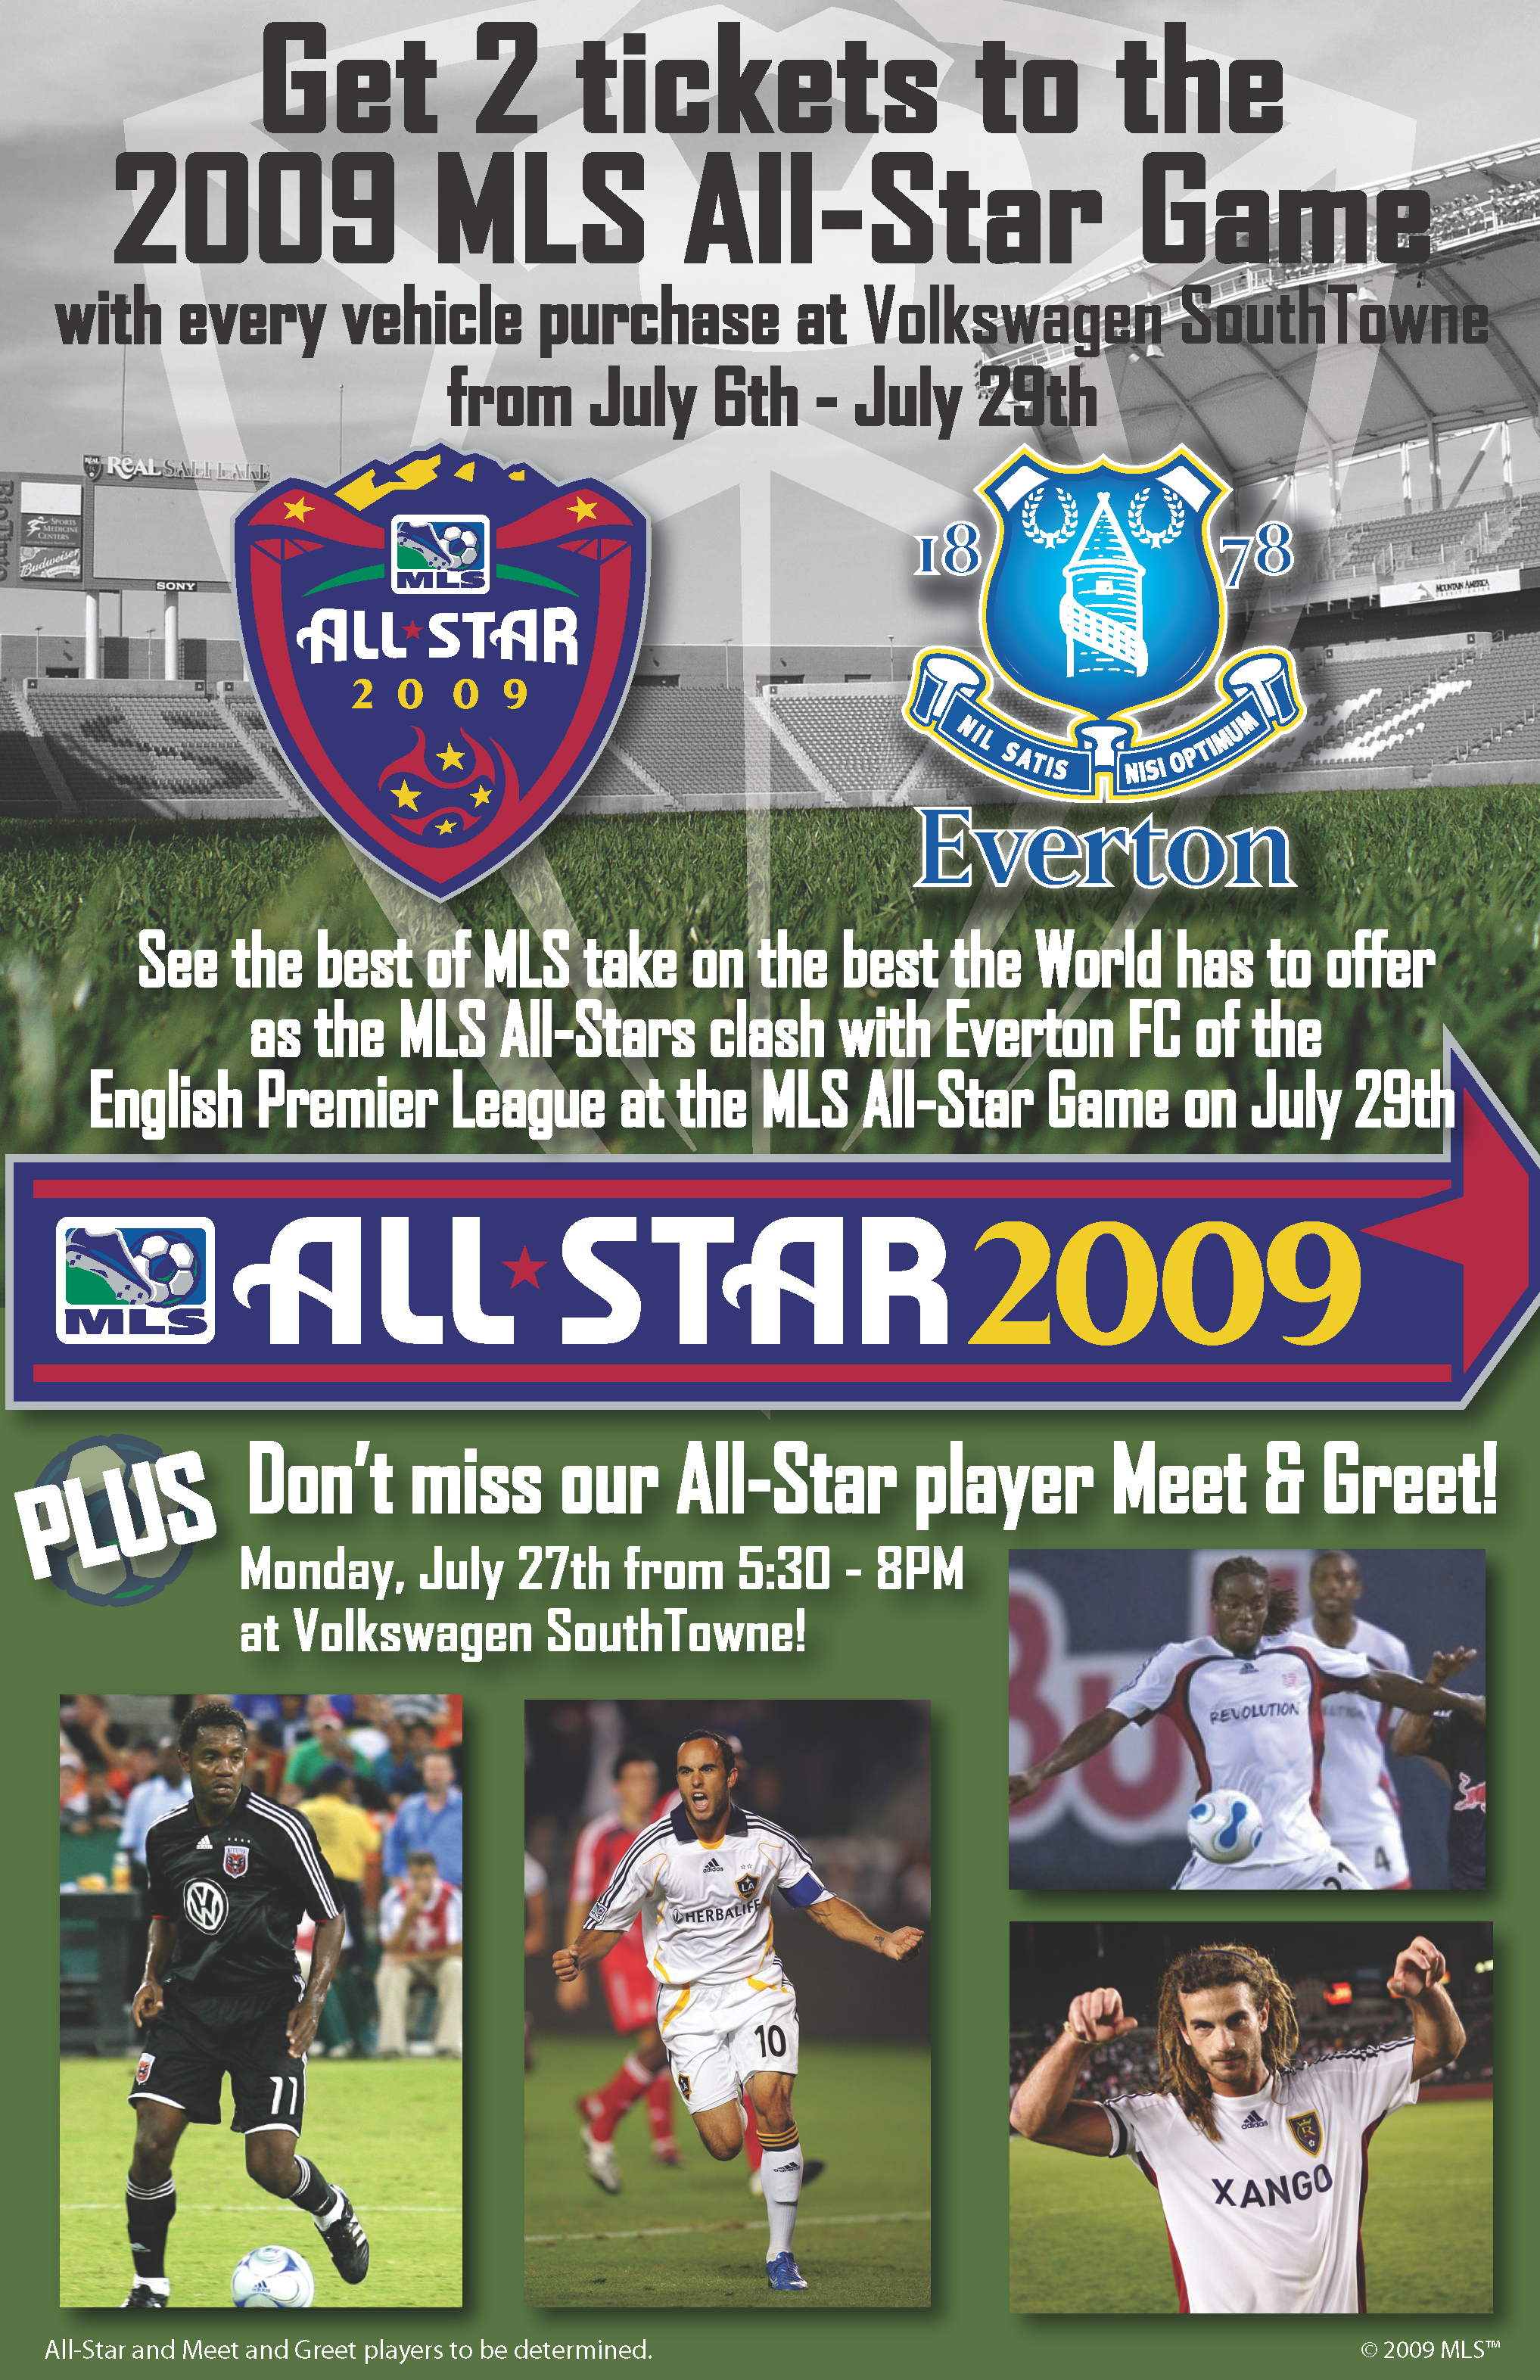 Get 2 Tickets To Mls All Star Game July 29th Volkswagen